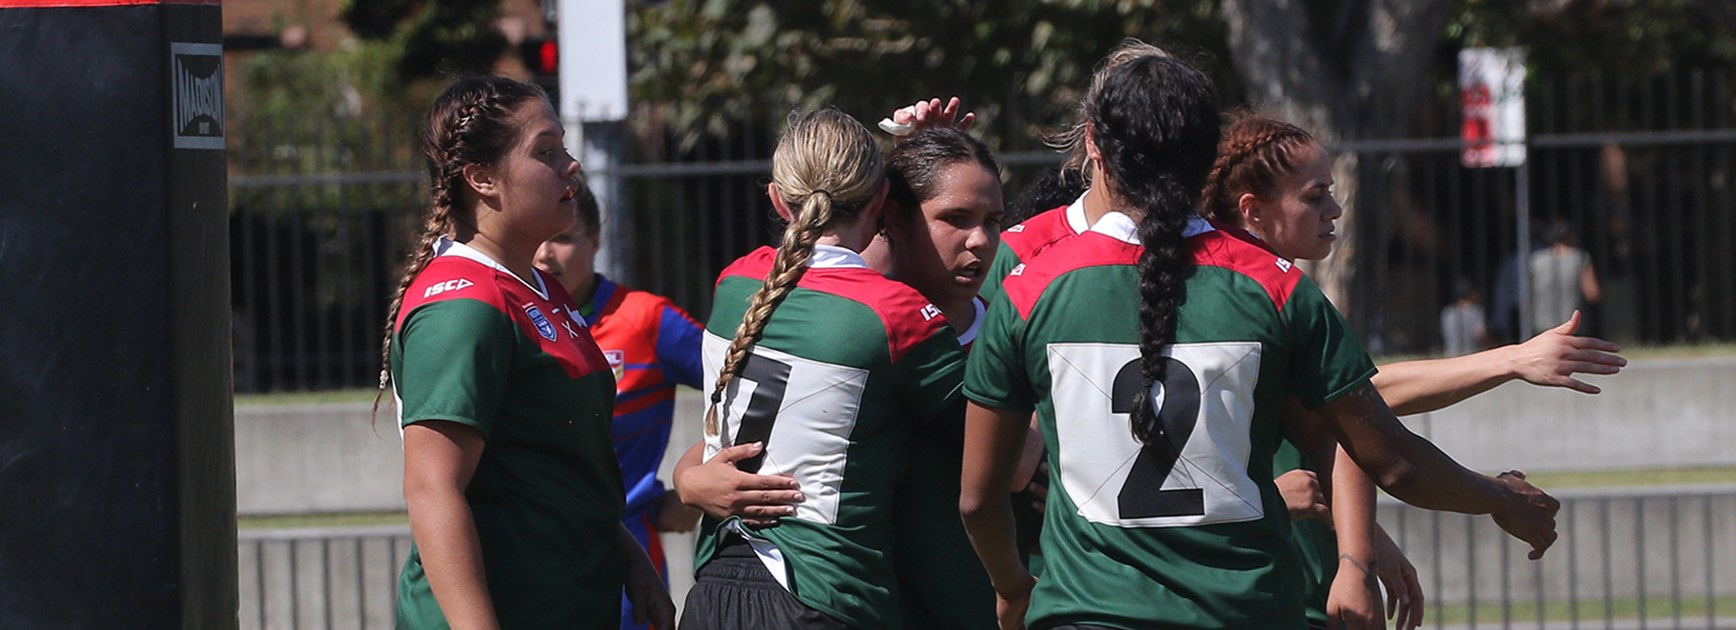 Meet the Rabbitohs women's team part 1